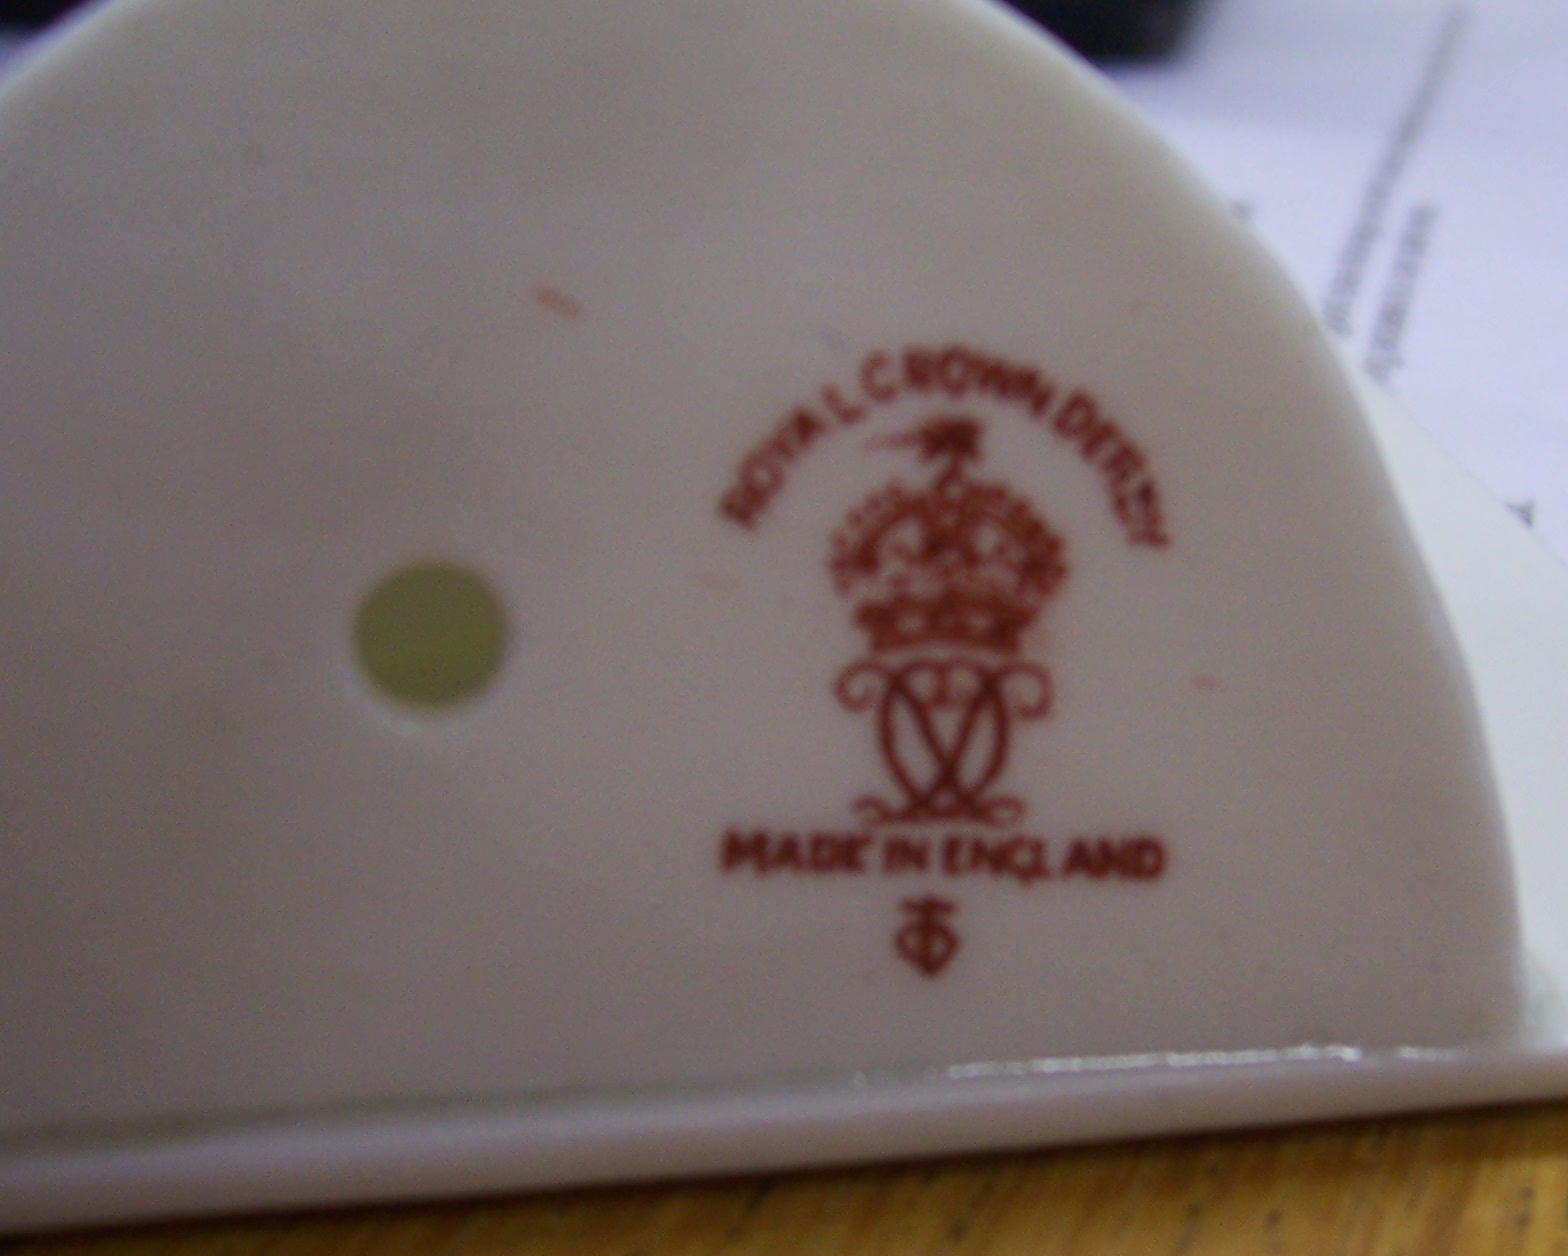 royal-crown-derby-menu-stand-mark